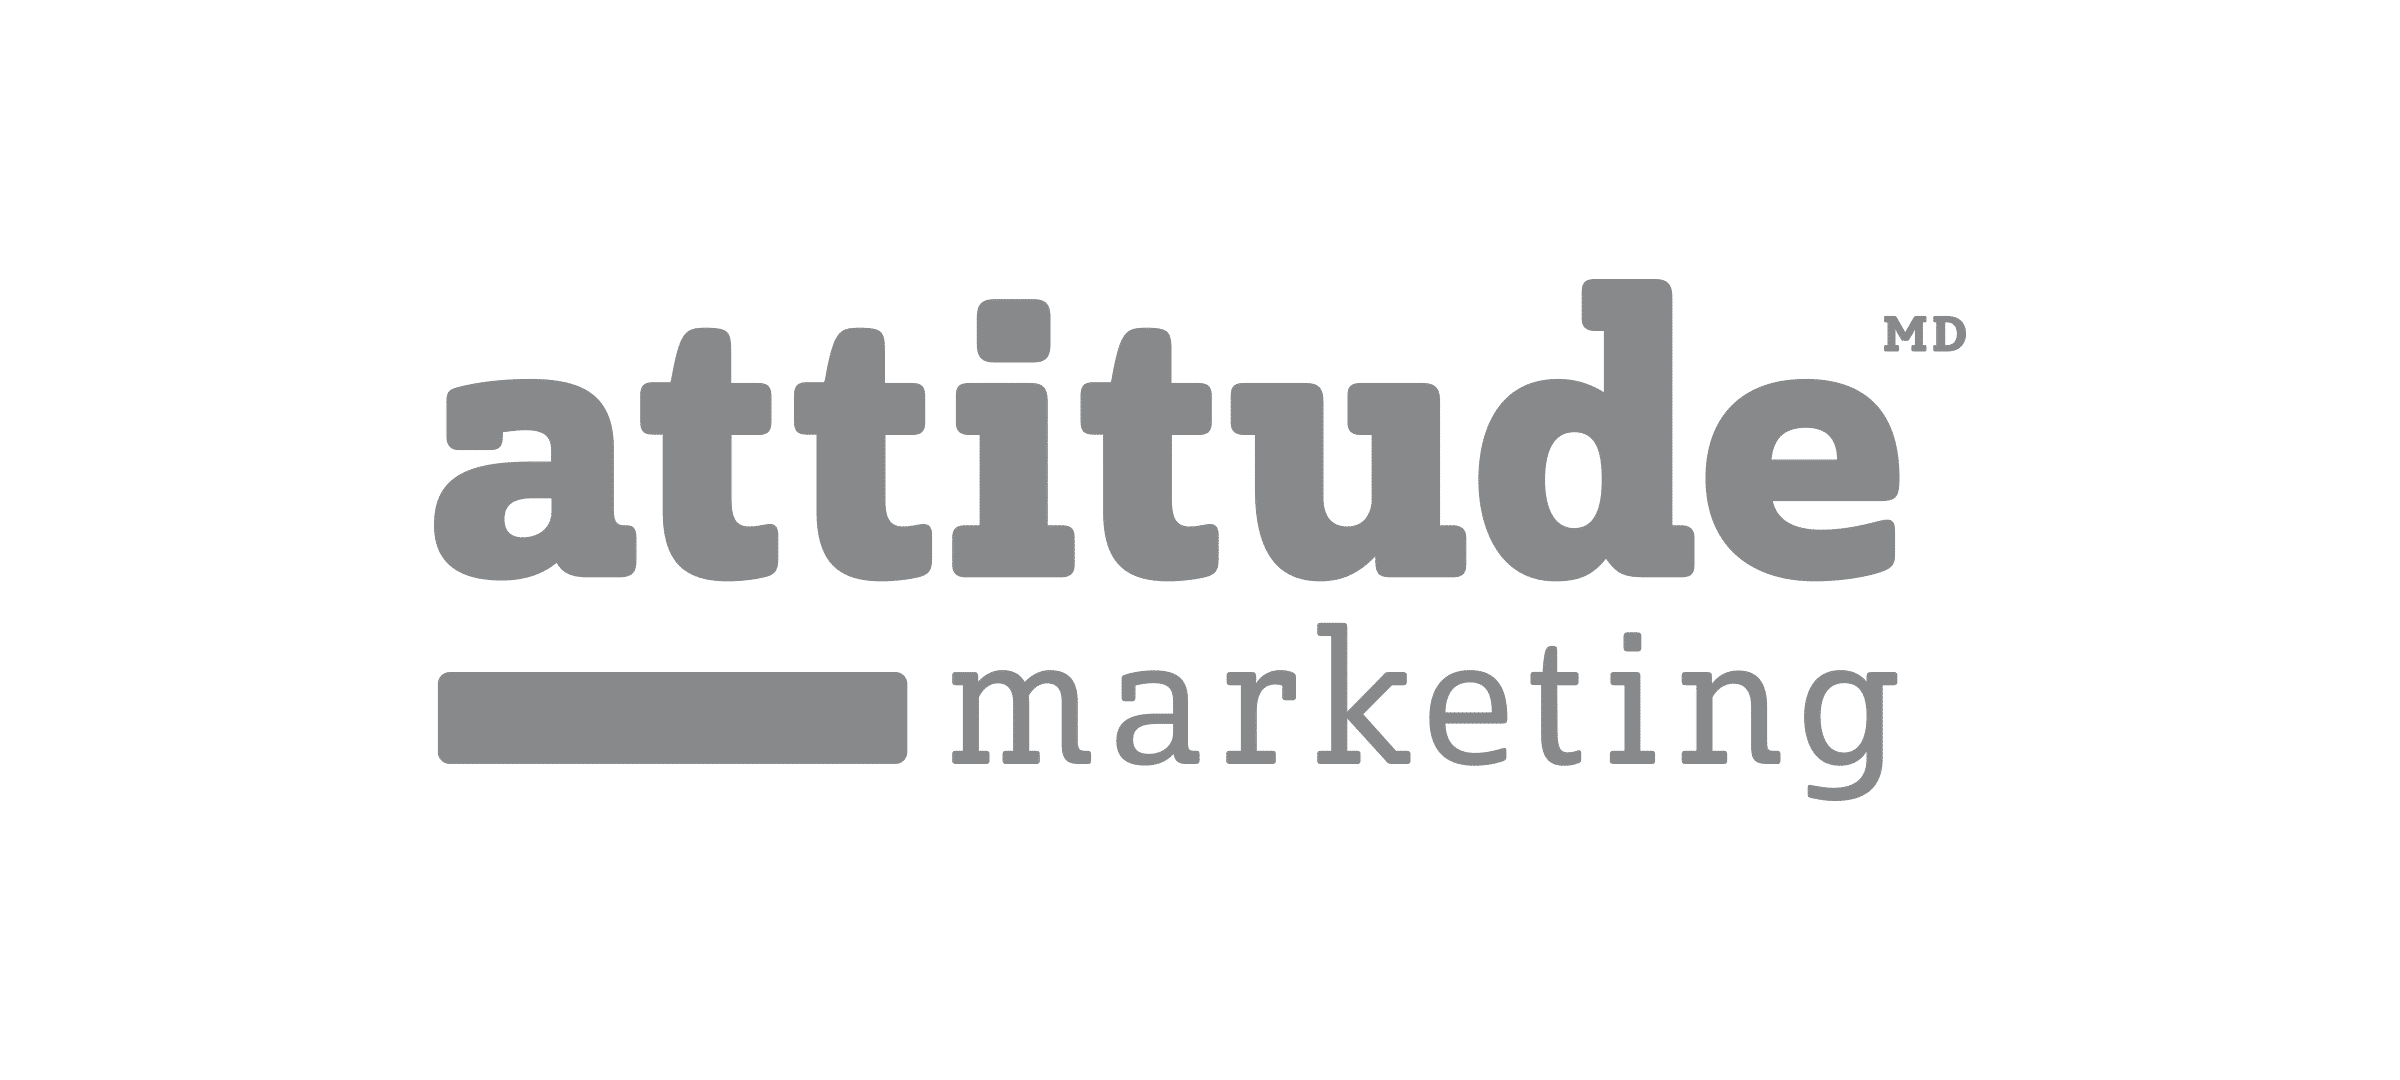 atiitude marketing